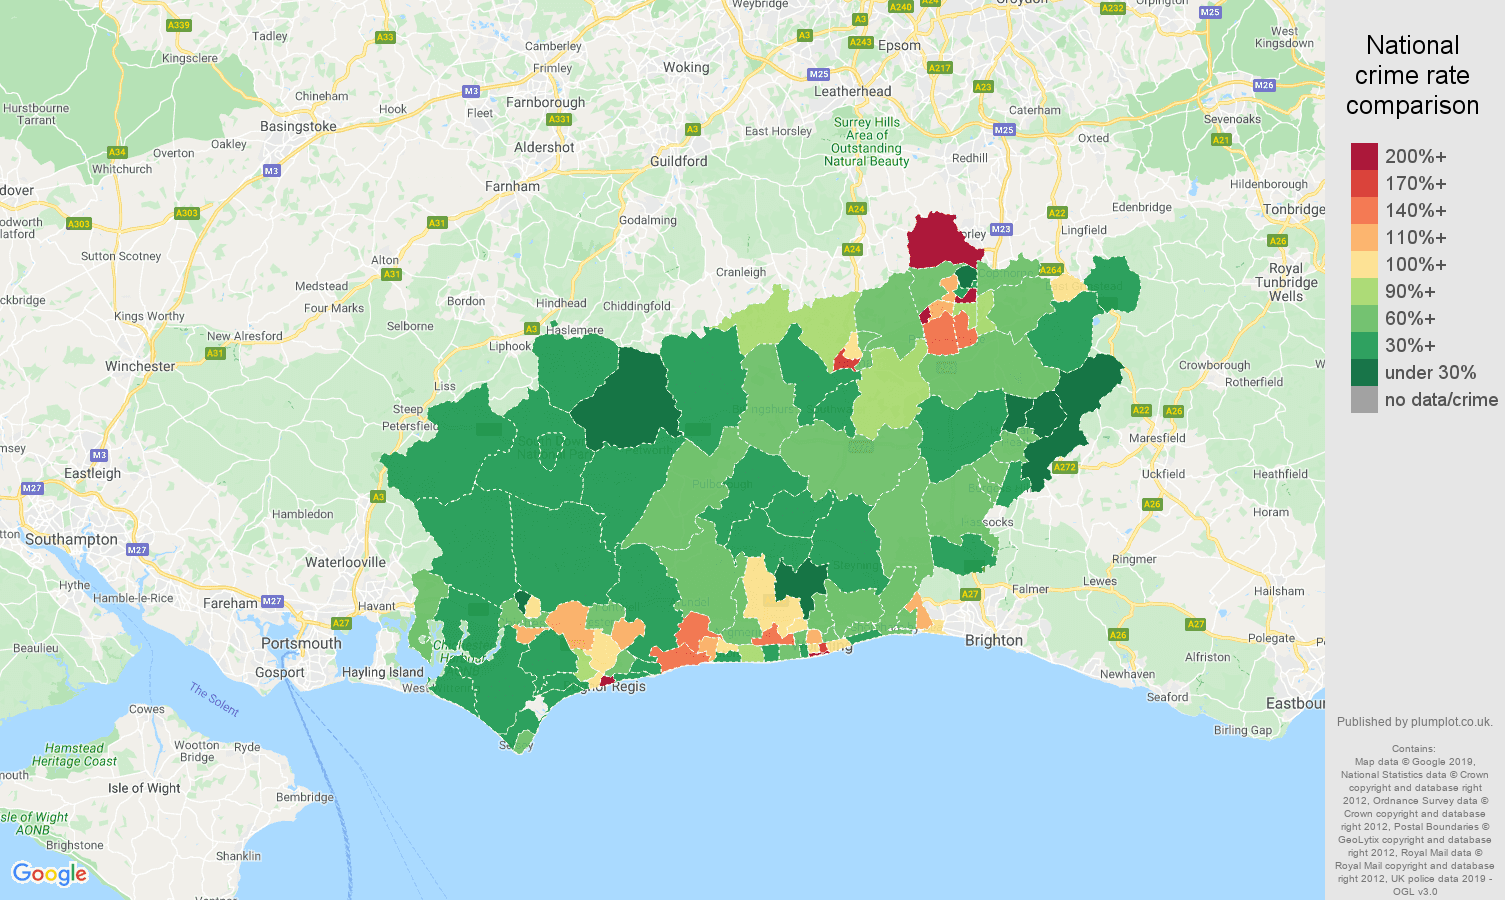 West Sussex public order crime rate comparison map